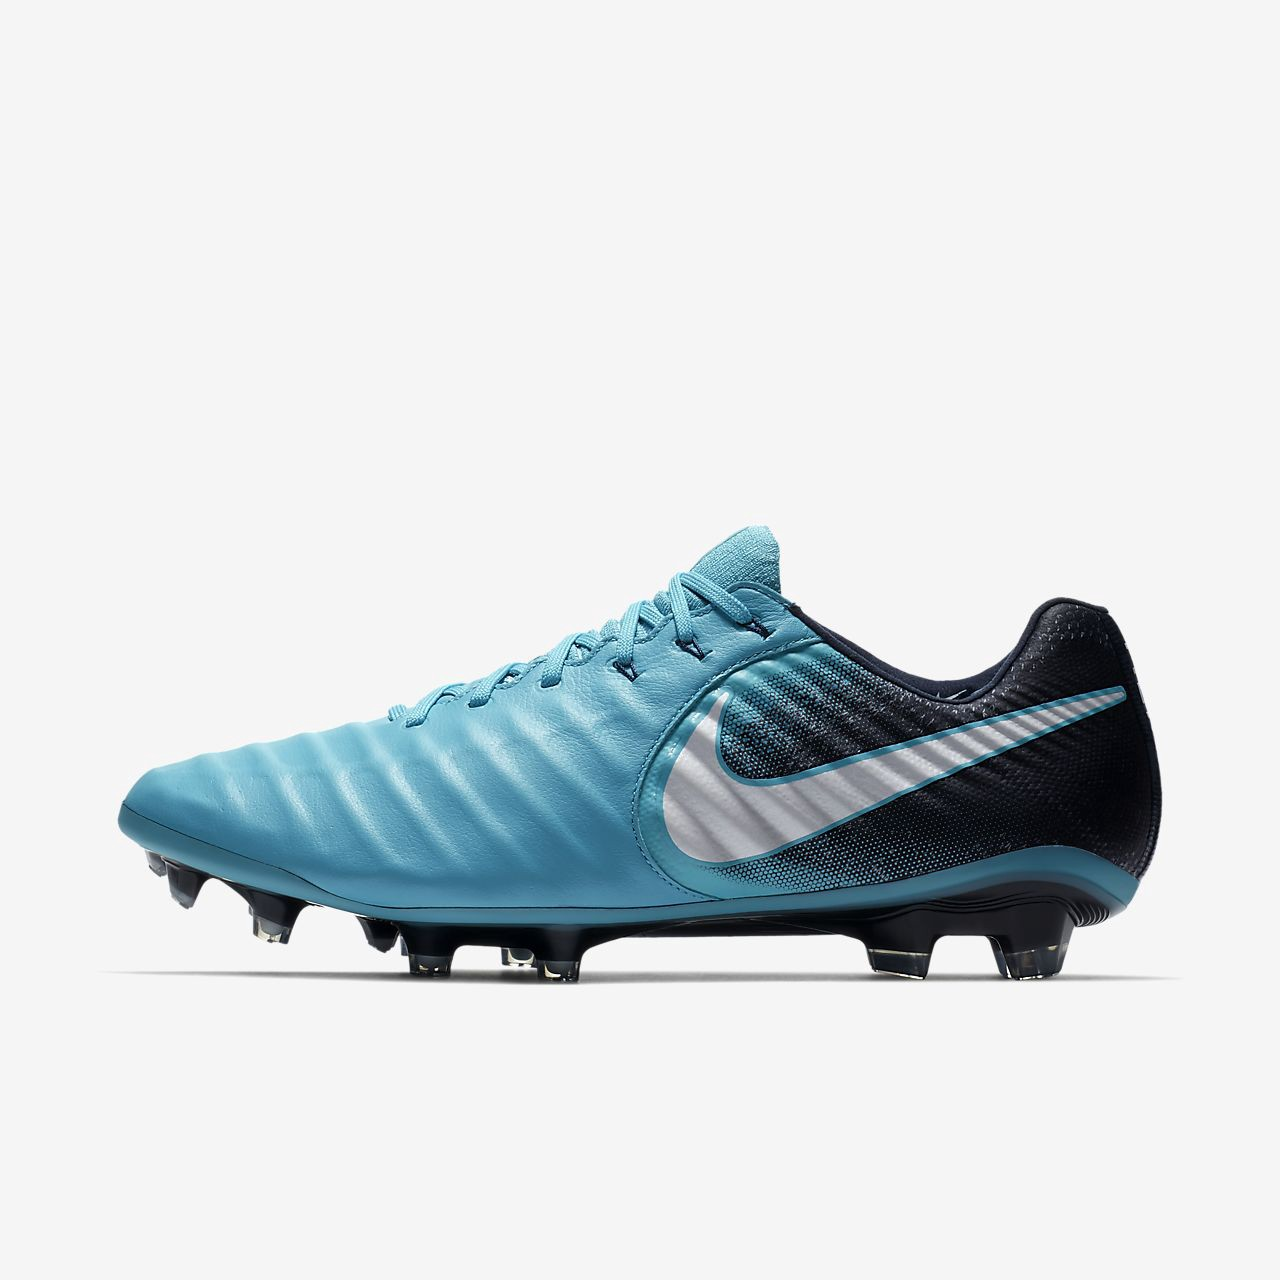 a39a7d699c2f ... purchase nike tiempo legend vii firm ground soccer cleat m 8 w 9.5  51a10 c0d64